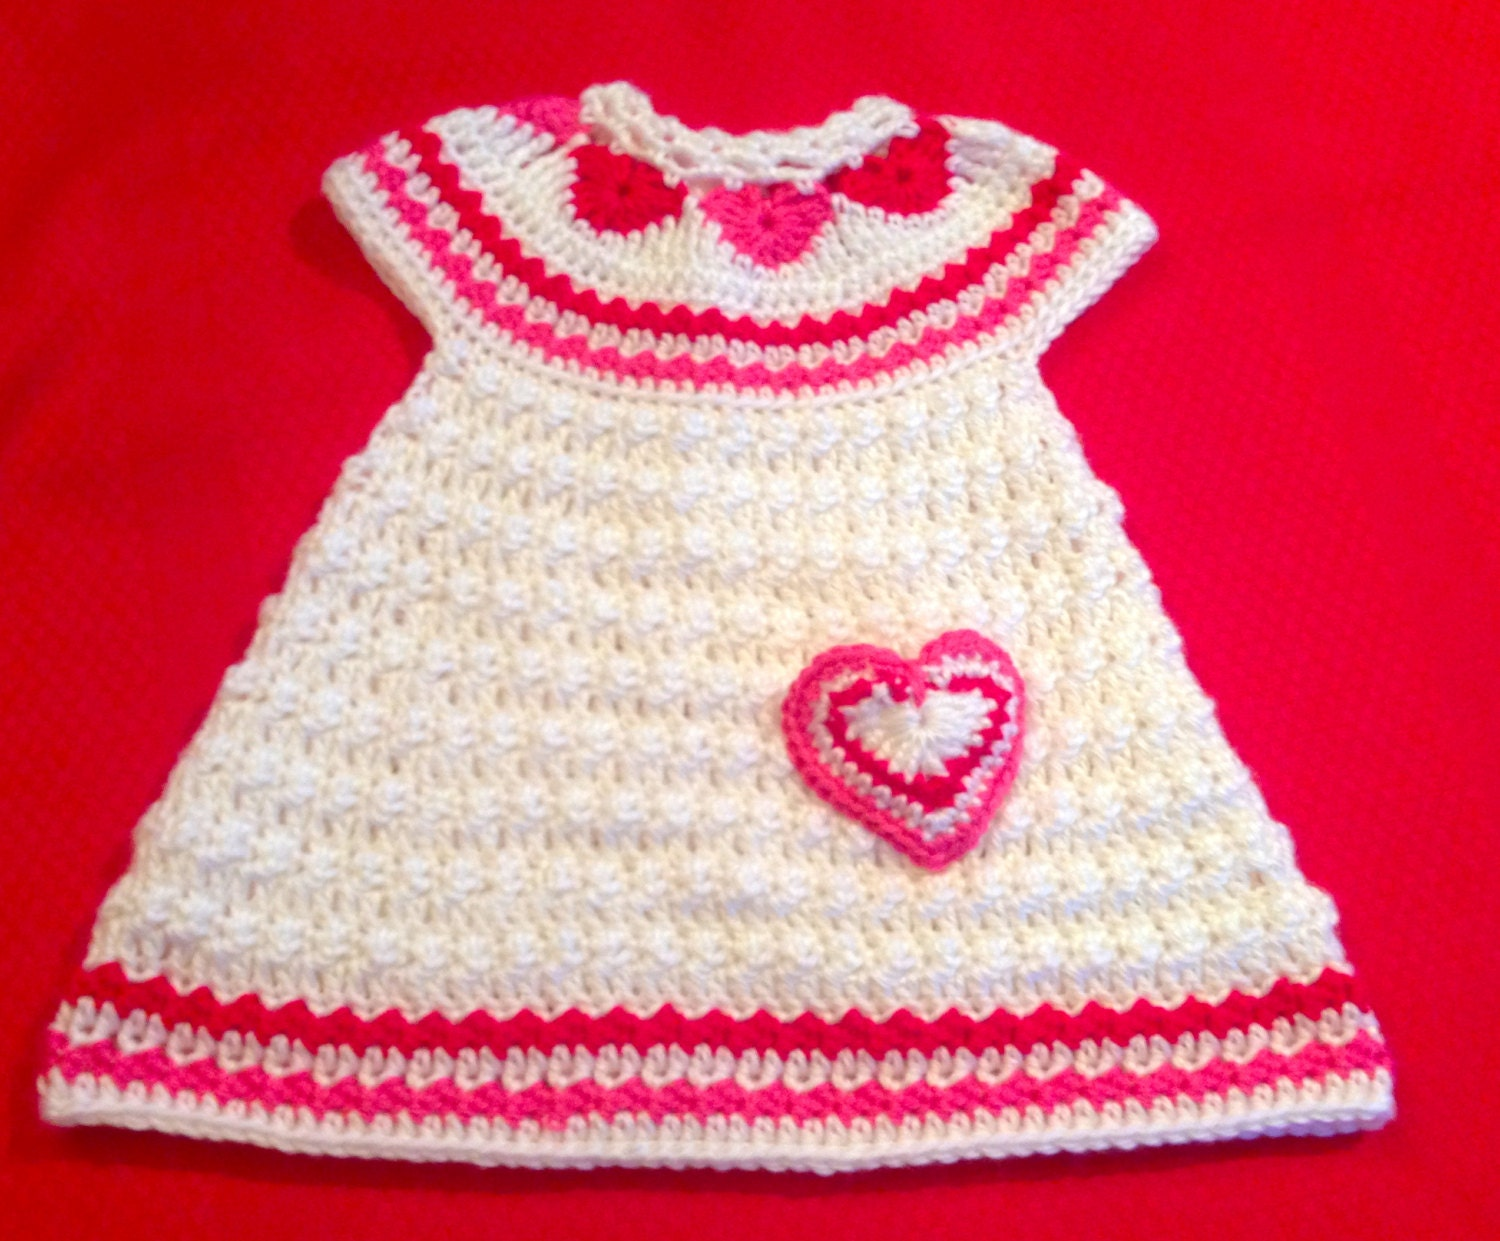 Crochet pattern for baby toddler jumper dress hearts of love zoom bankloansurffo Choice Image